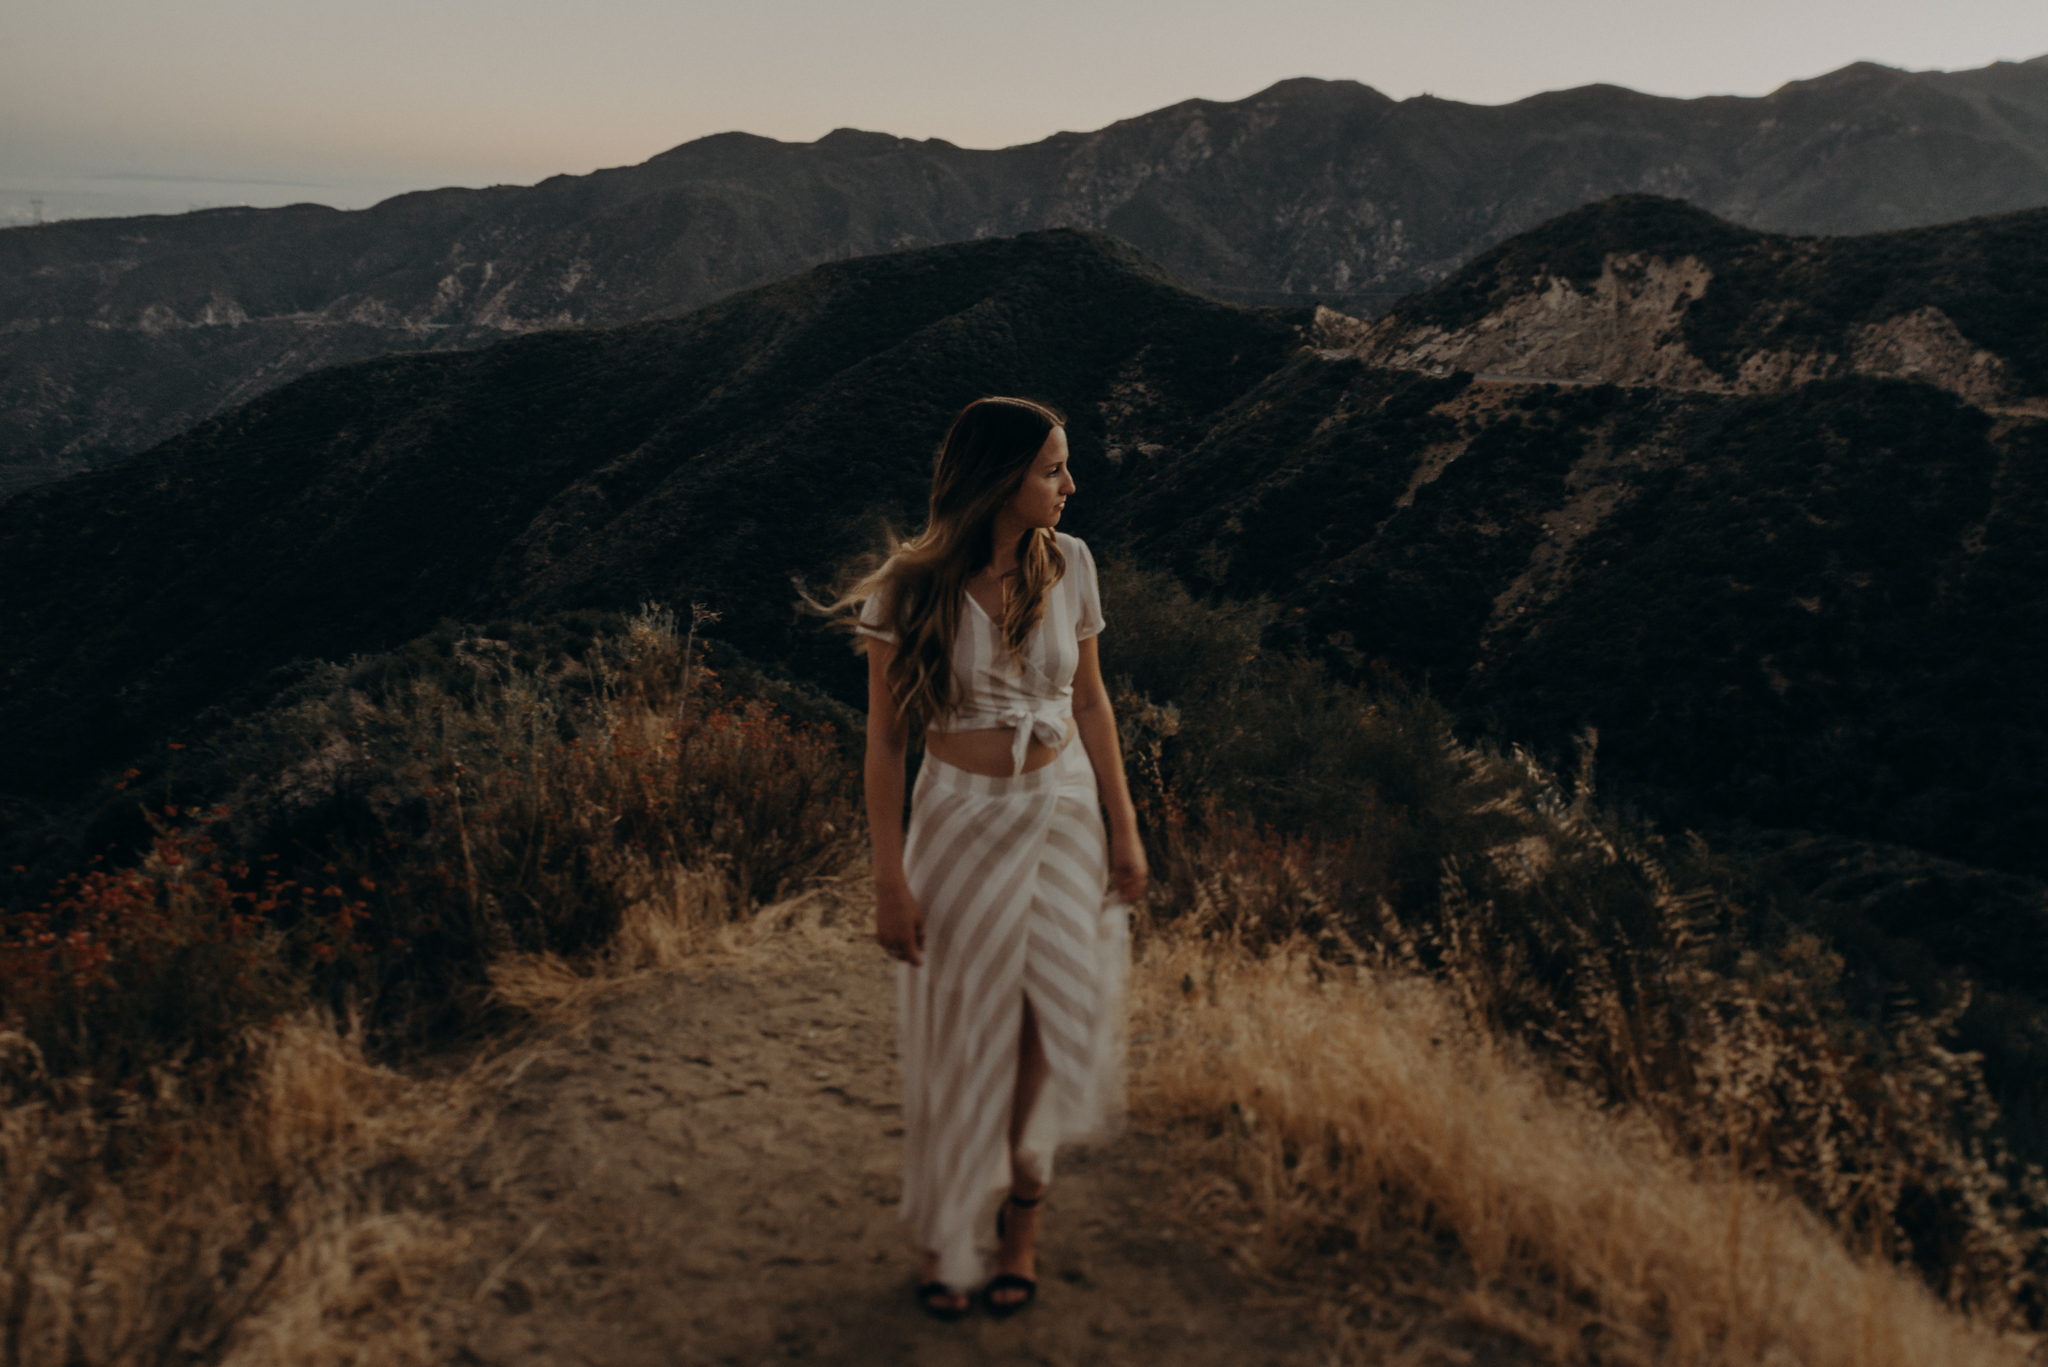 Isaiah + Taylor Photography - Los Angeles Forest Engagement Session - Laid back wedding photographer-046.jpg